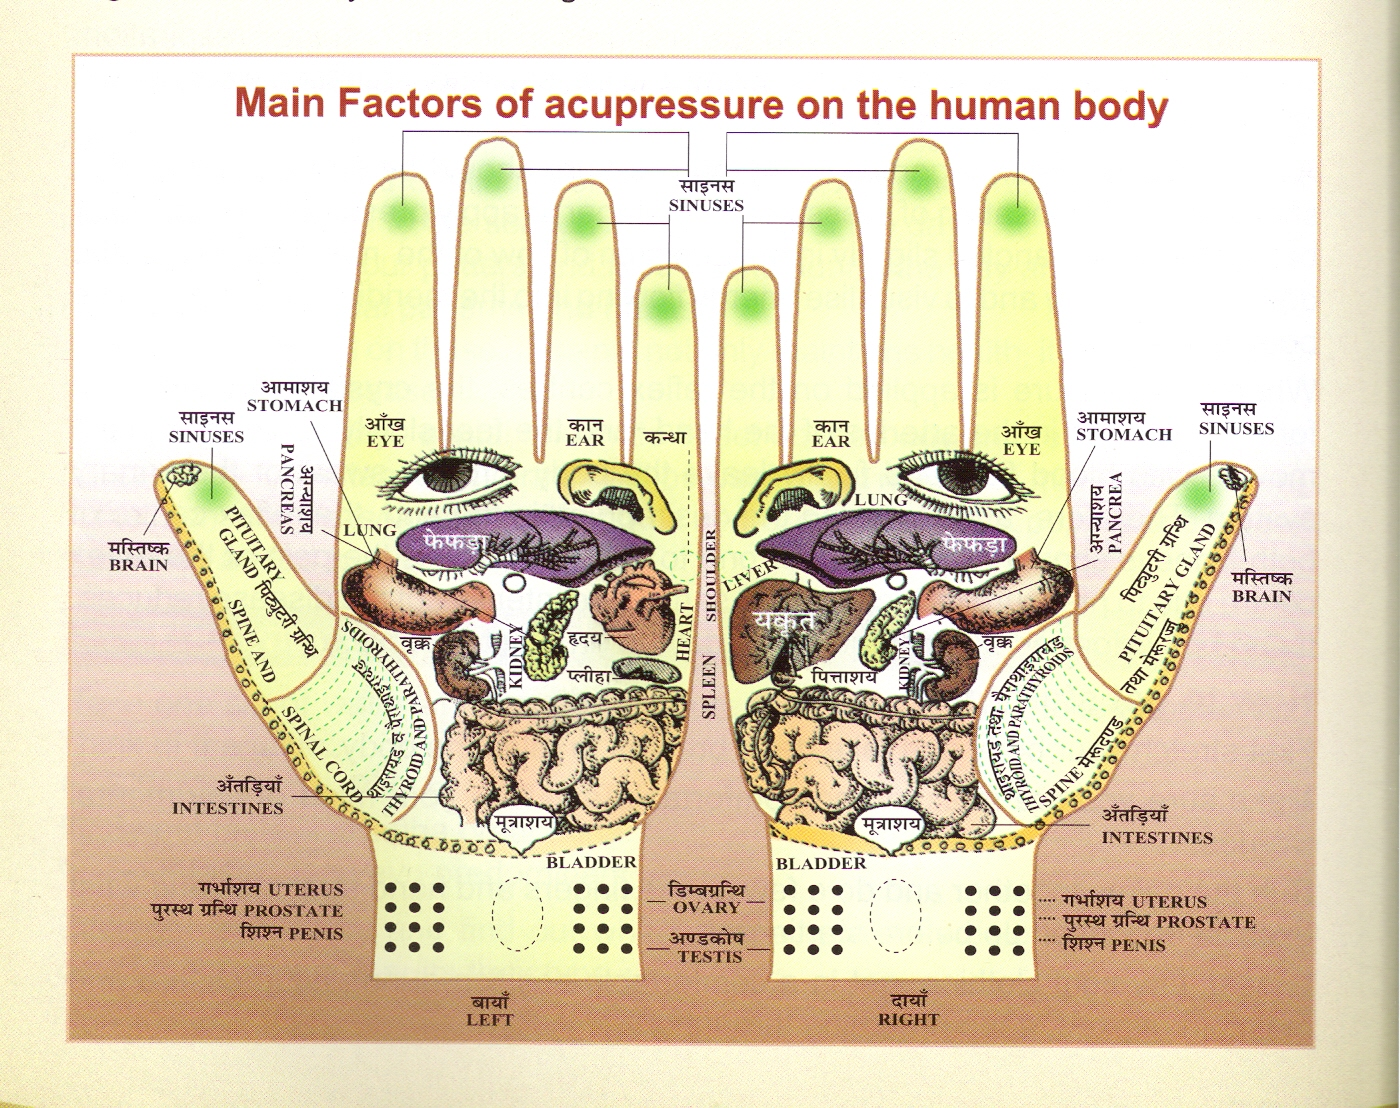 Acupressure Healing, Alternative Treatment for Chronic Disease, India ...